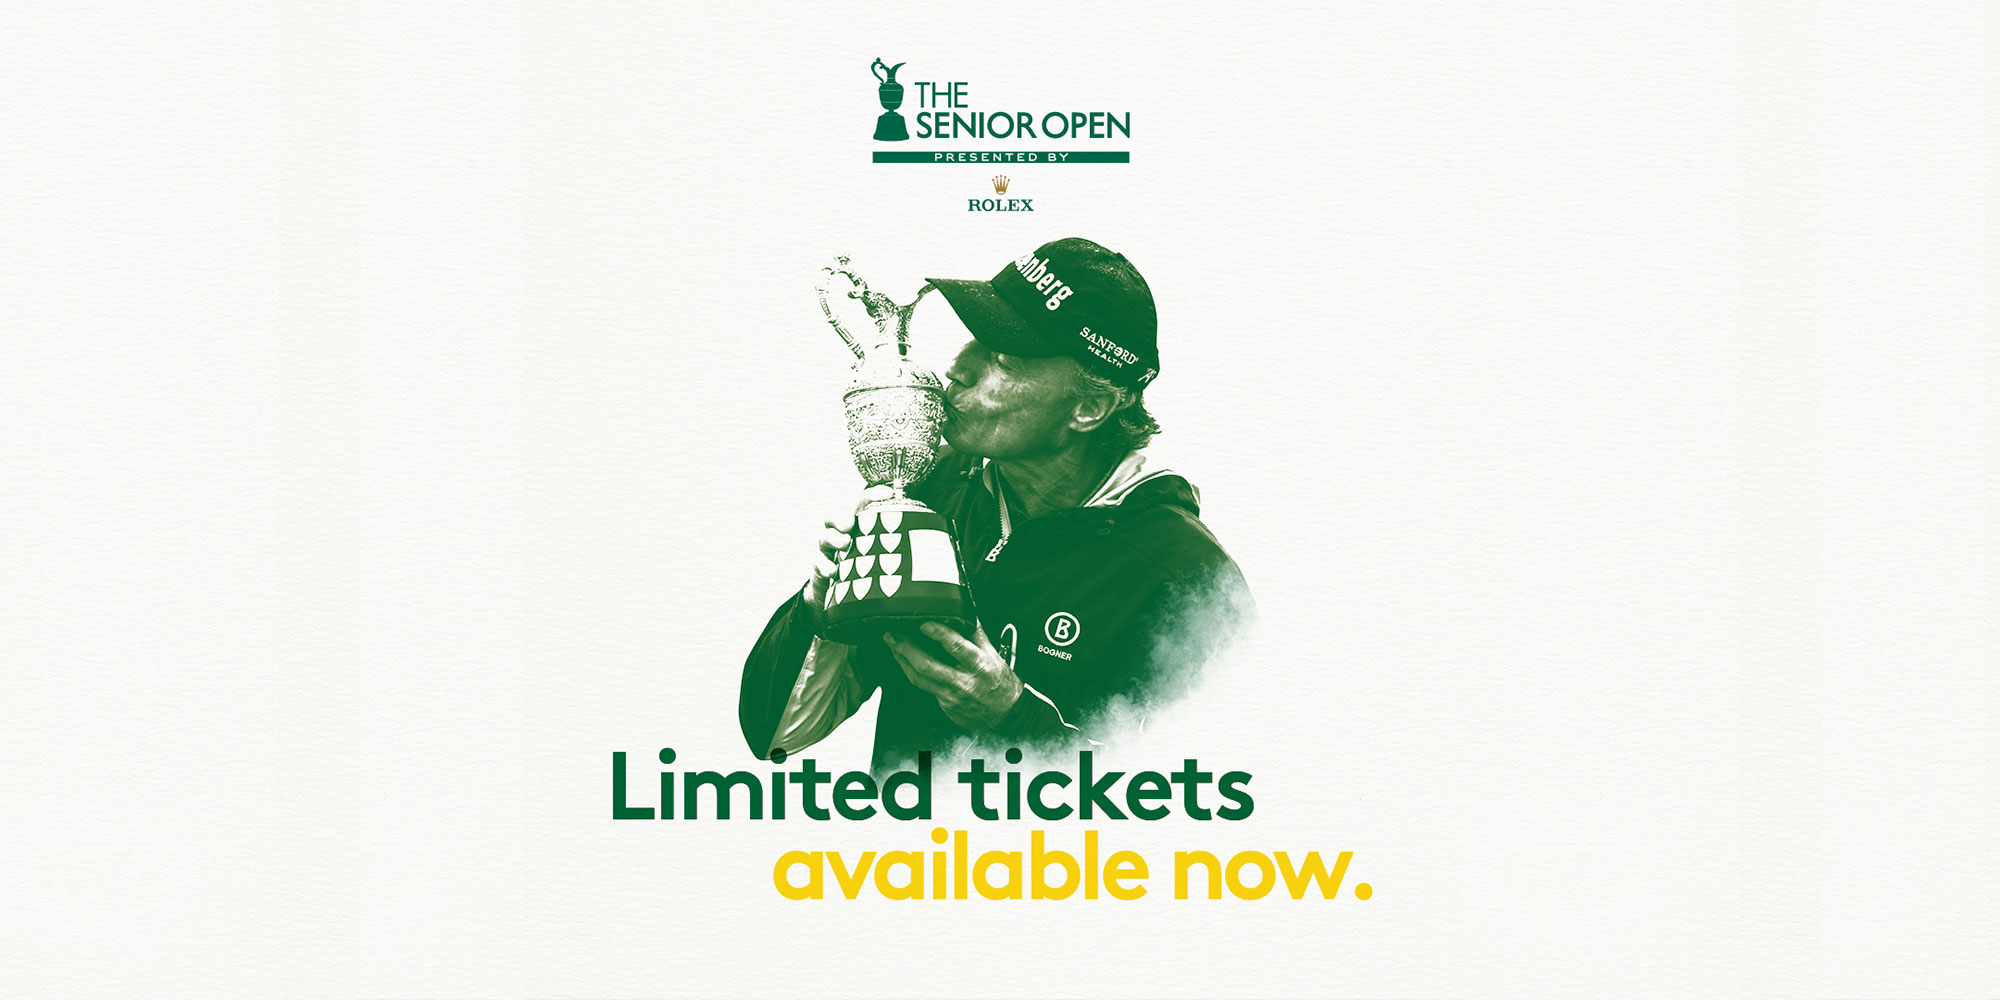 The Senior Open Presented by Rolex - Thursday